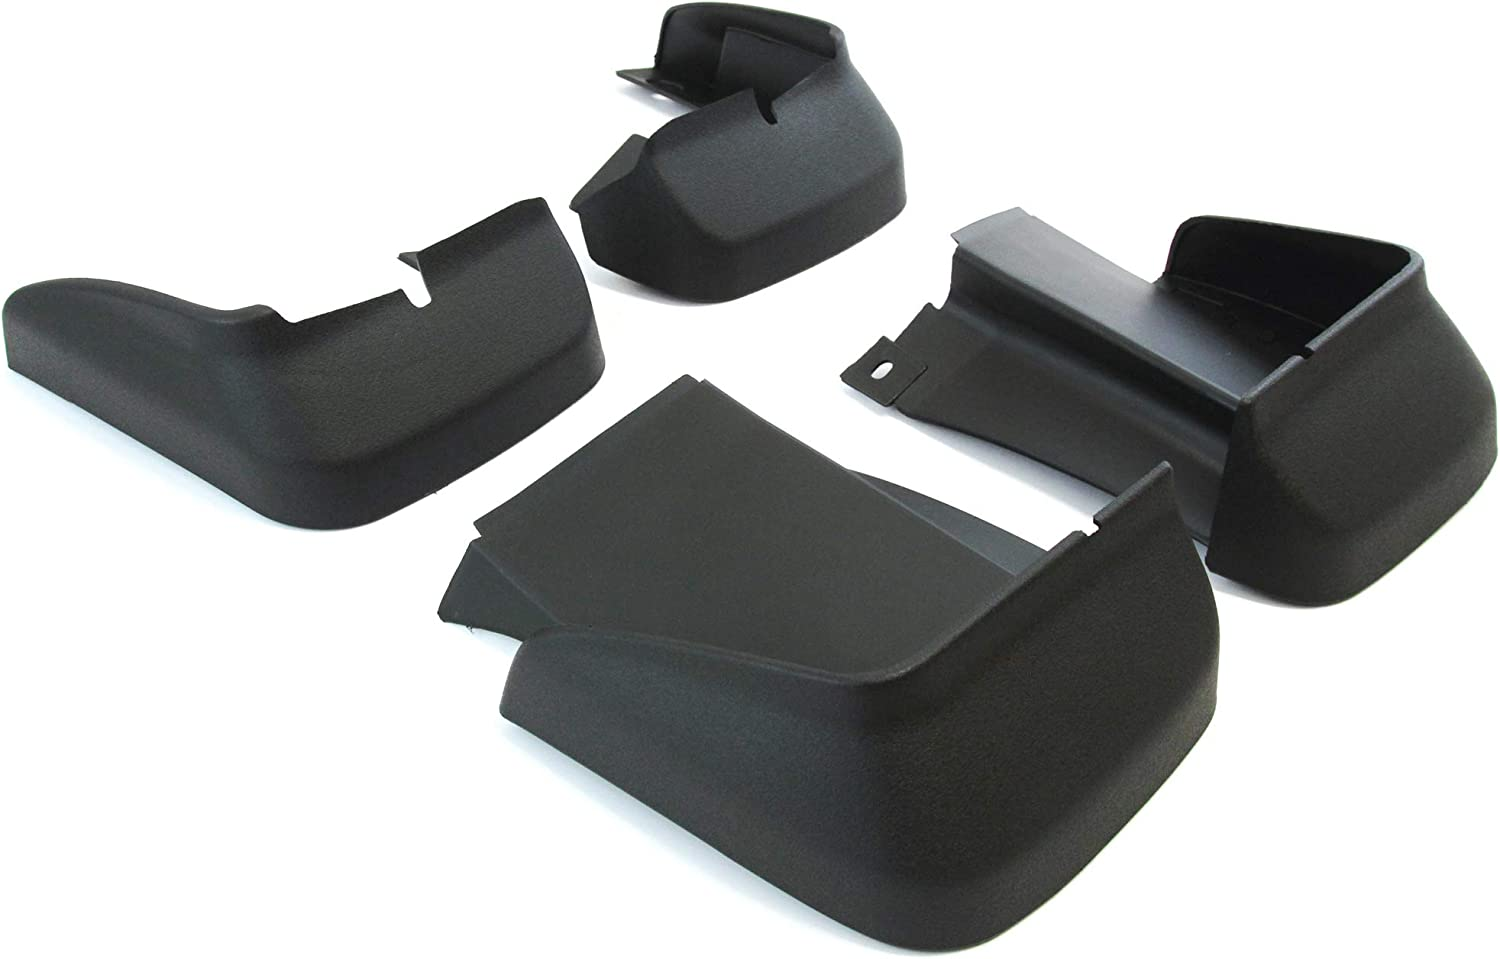 Will not fit 2-Door Coupe or Si Models Red Hound Auto Compatible with Honda 2006-2011 Civic 4-Door Sedan Mud Flaps Splash Guards Front and Rear Molded 4pc Full Set